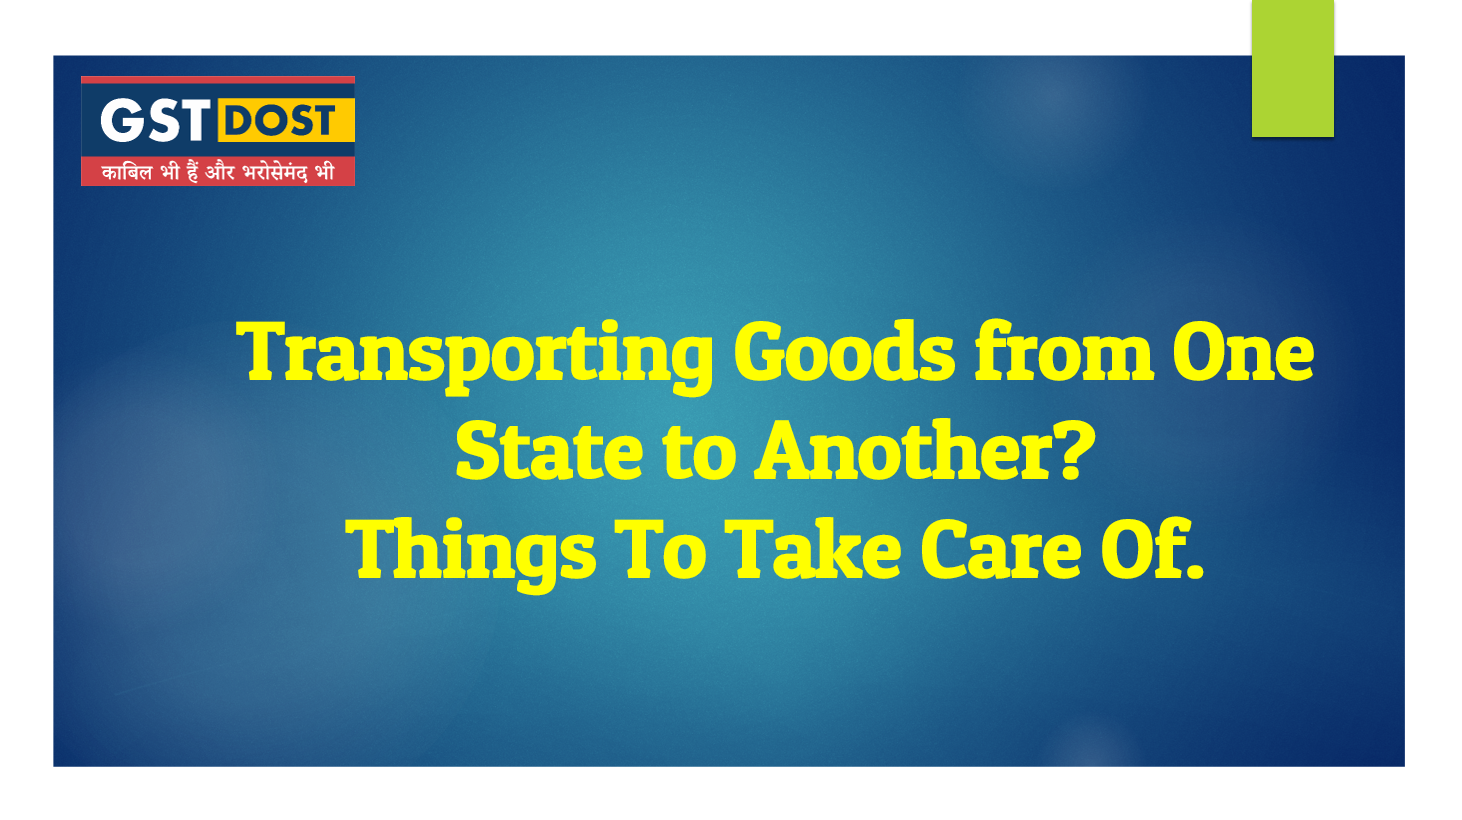 Things To Take Care of while transporting goods.